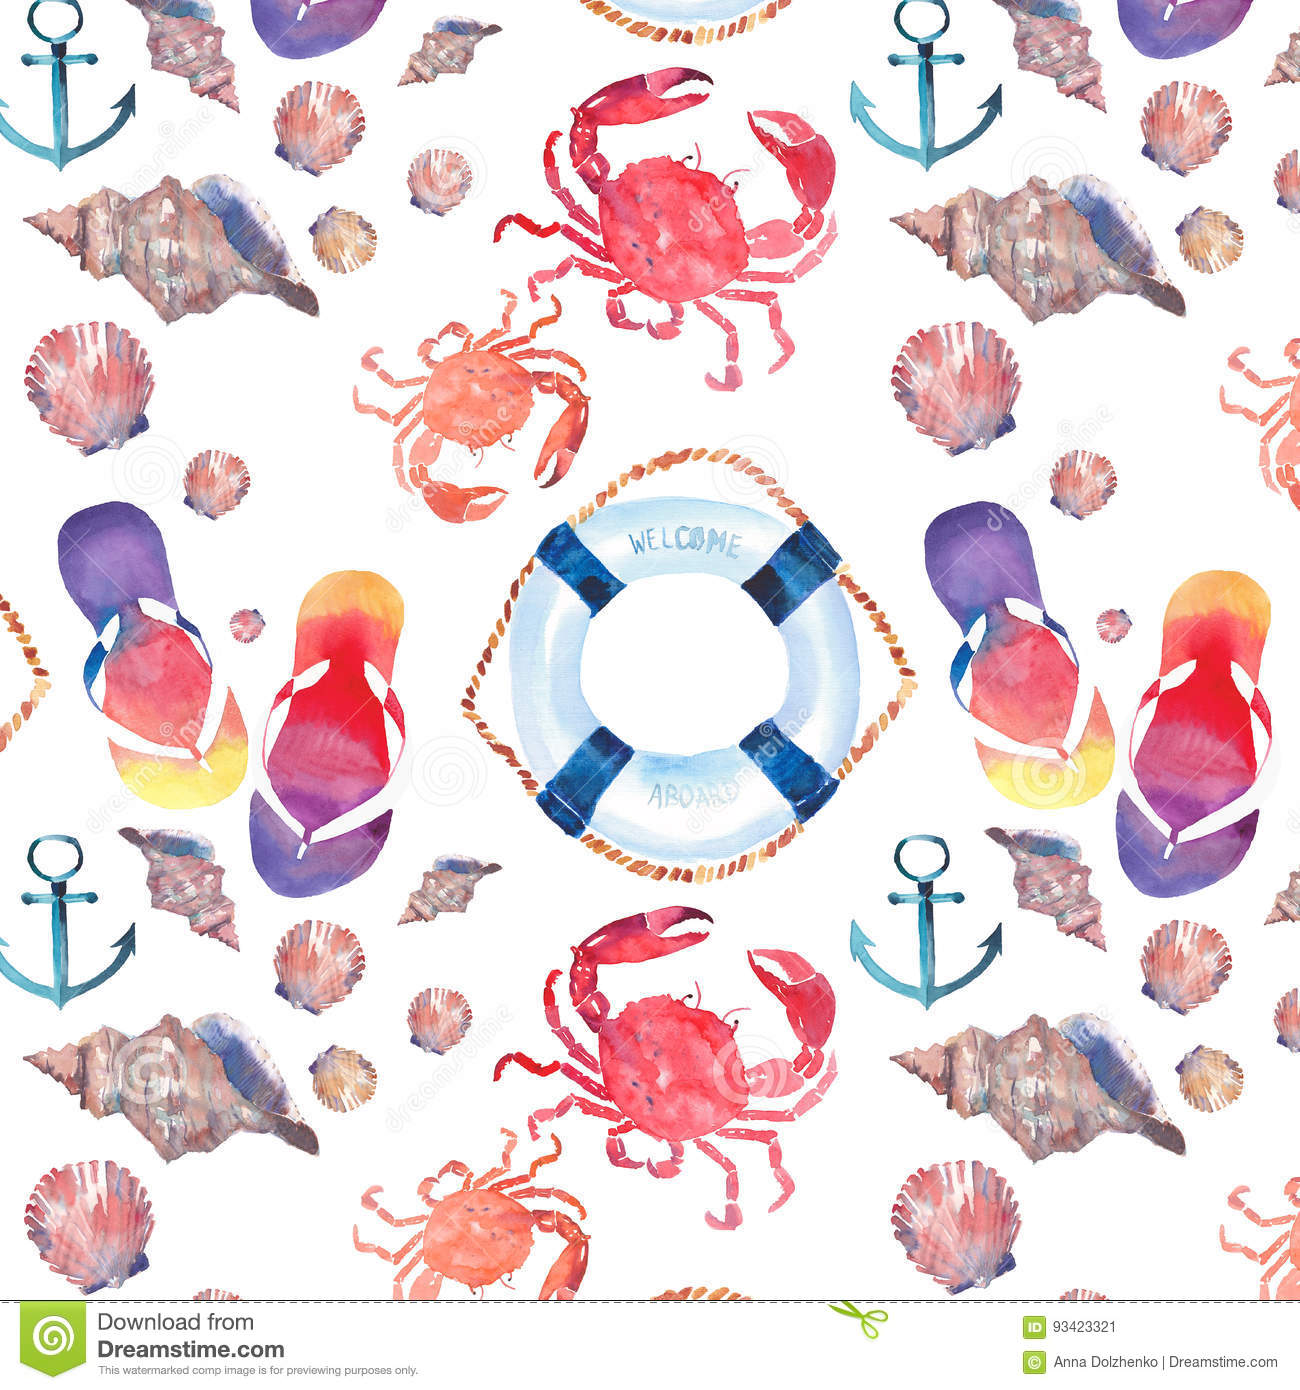 28726c2fd2f Beautiful bright colorful lovely summer marine beach pattern of flip flops  red crabs pastel cute seashells blue lifebuoy and dark blue anchor  watercolor ...